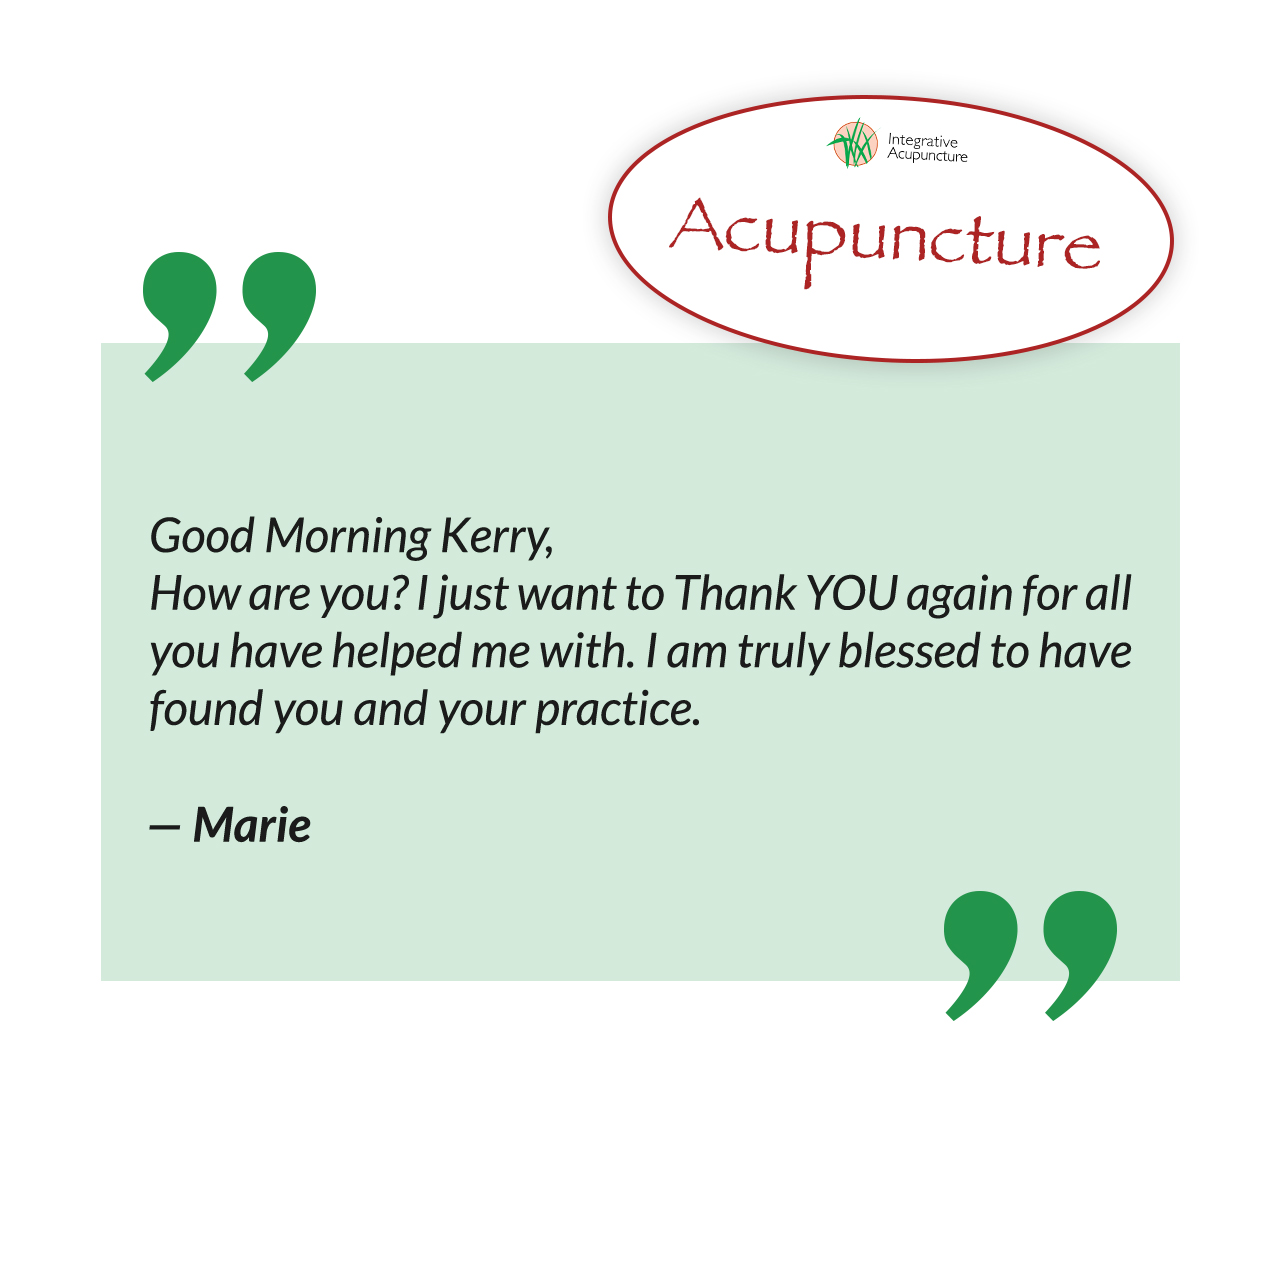 Acupuncture Review